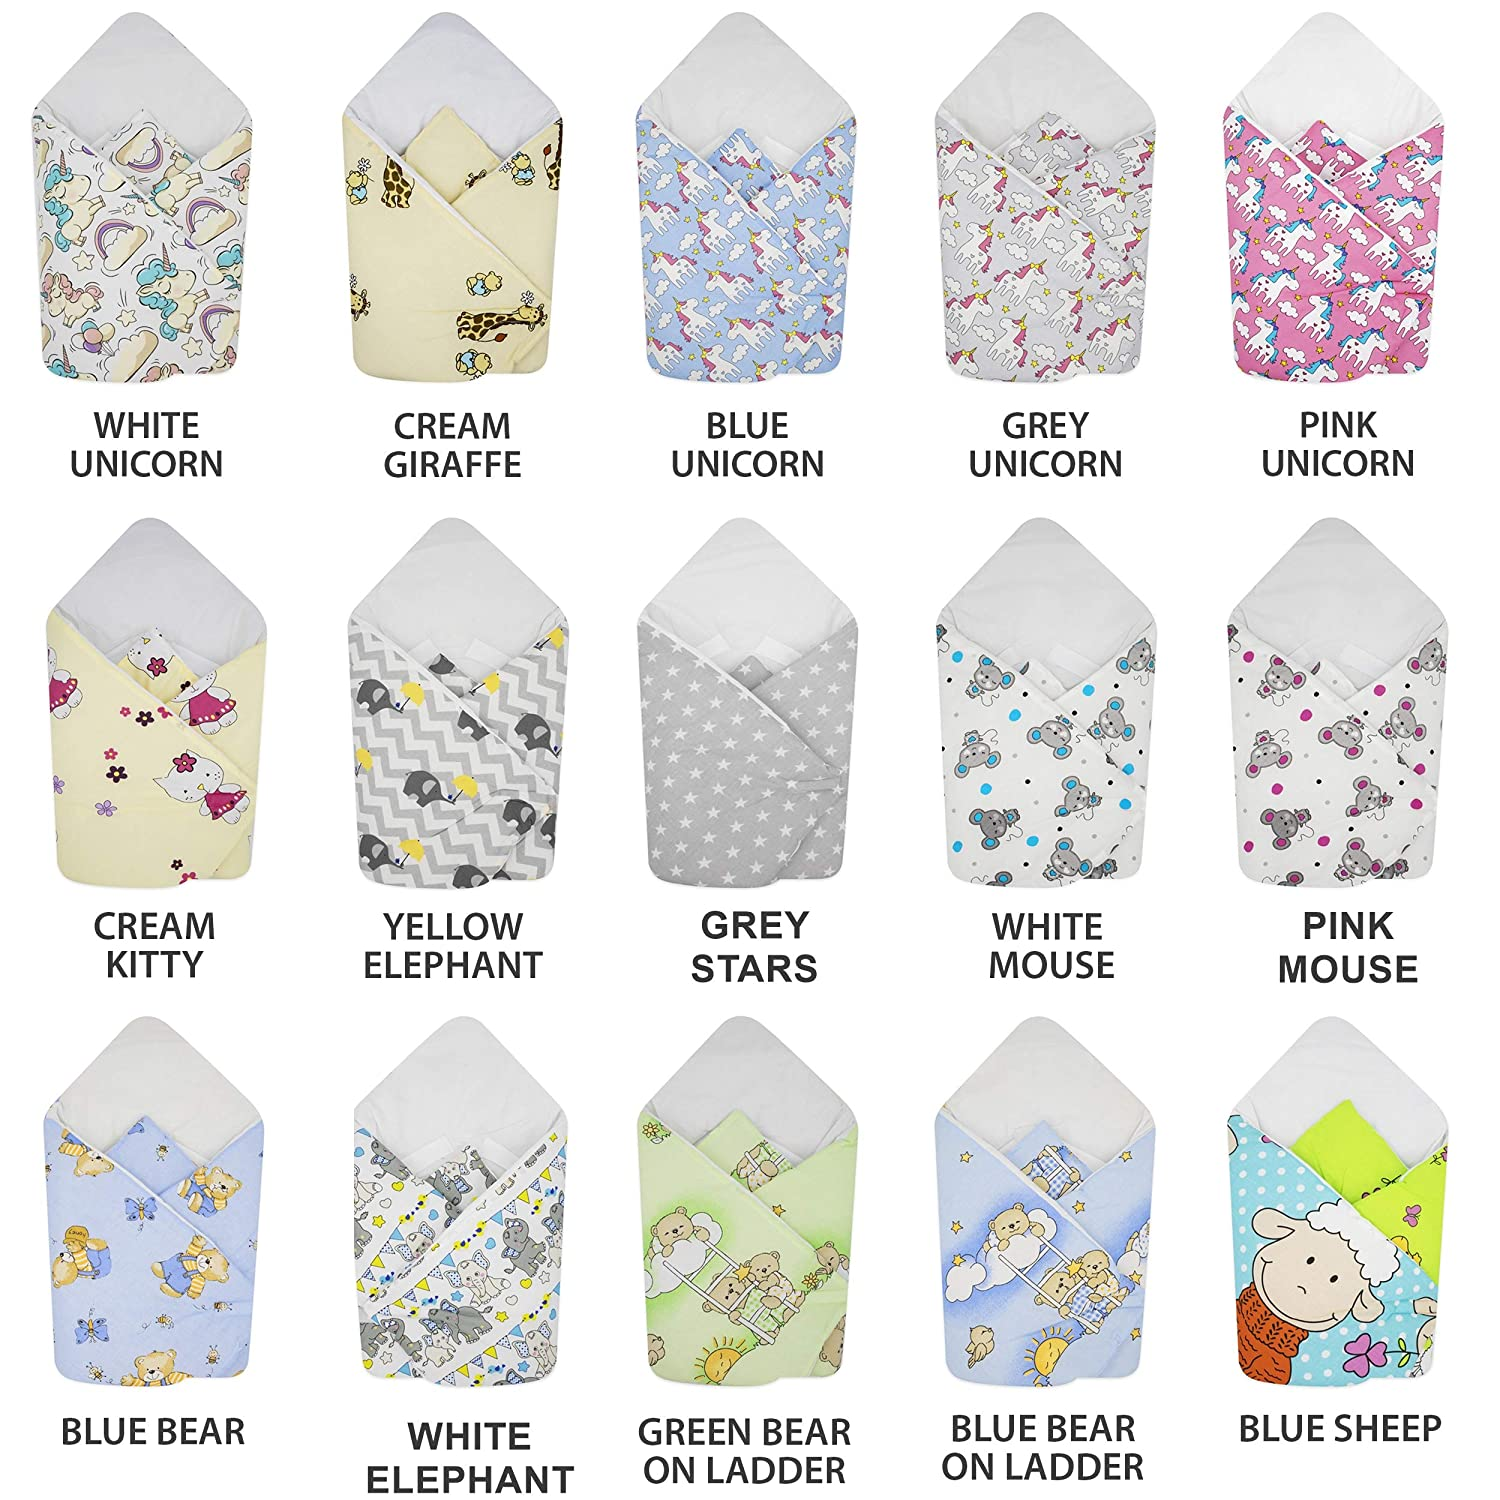 Intended for Kids Aged 0-3 Months BlueberryShop Cotton Baby Swaddle Wrap Car Seat Blanket 78 x 78 cm Perfect for Prams /& Cots Cream Safari Sleeping Bag for Newborns